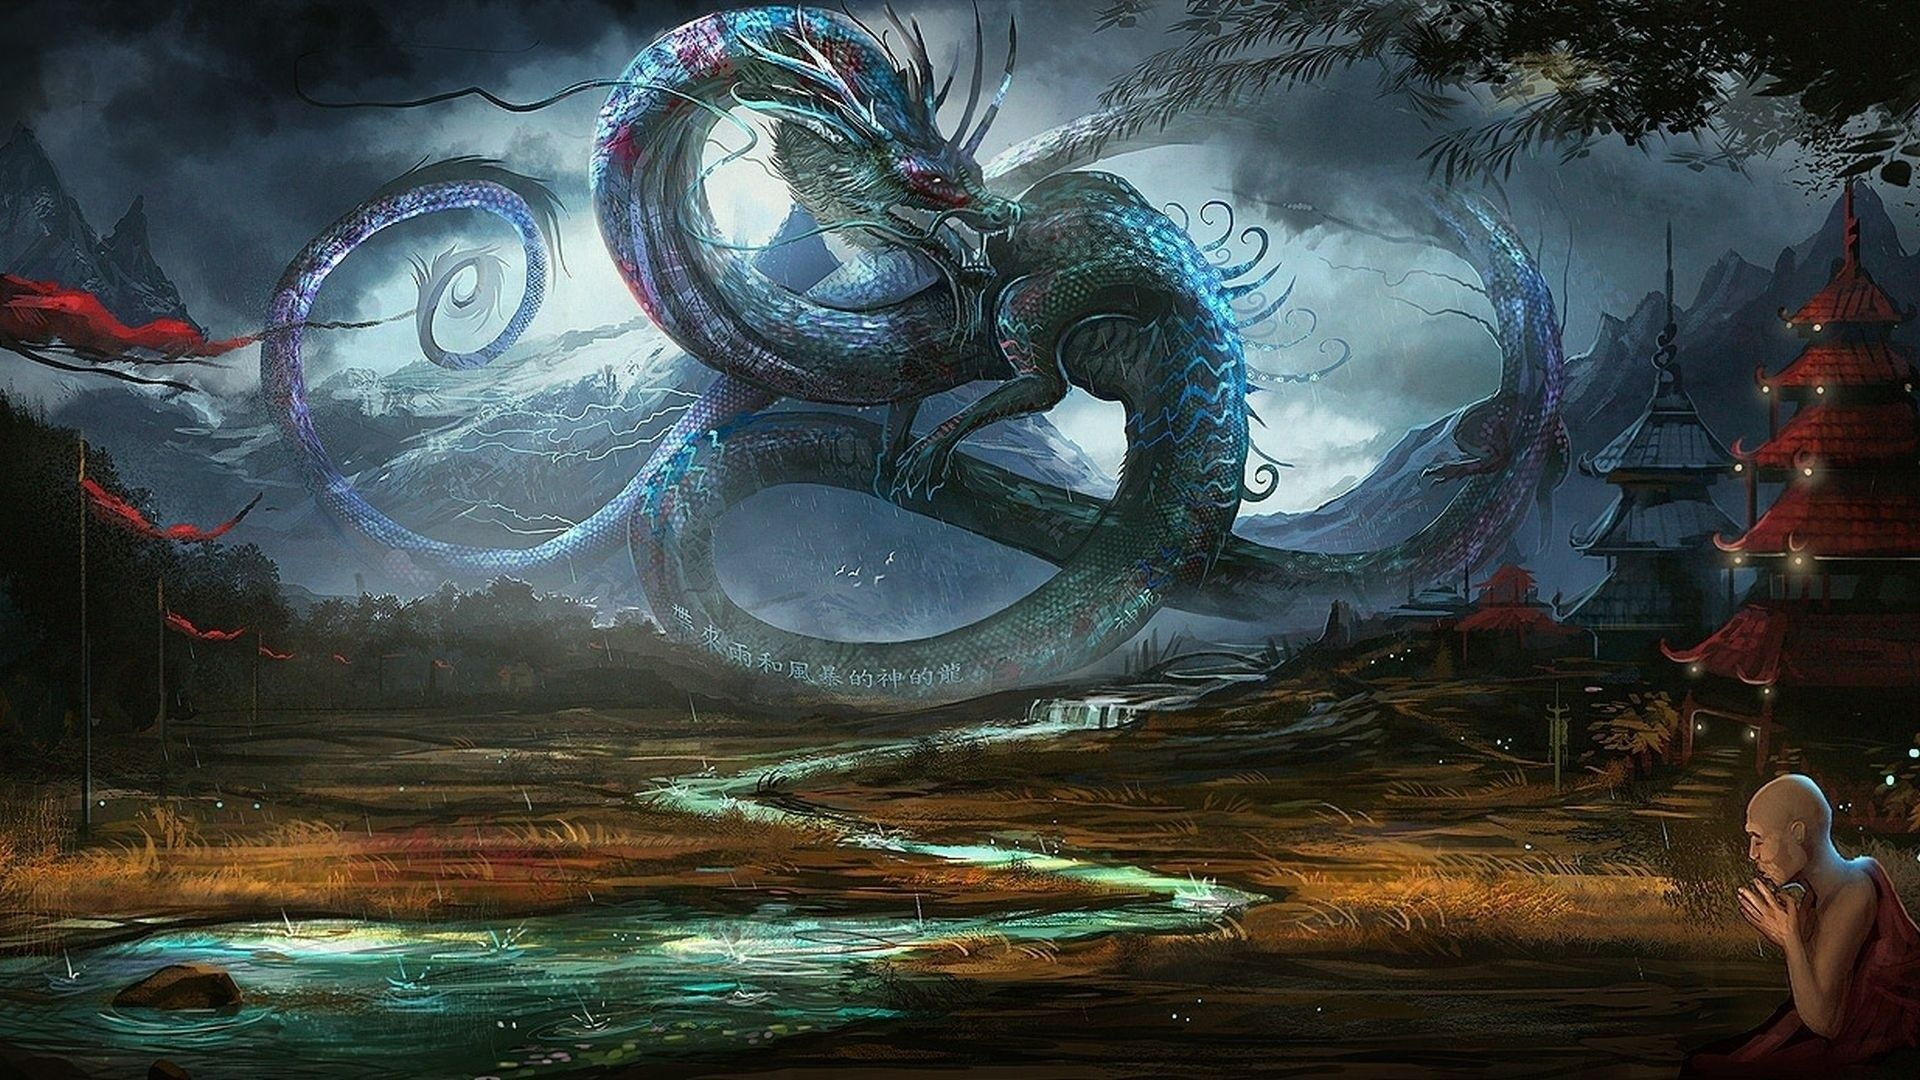 Eastern Dragon Wallpapers Top Free Eastern Dragon Backgrounds Wallpaperaccess